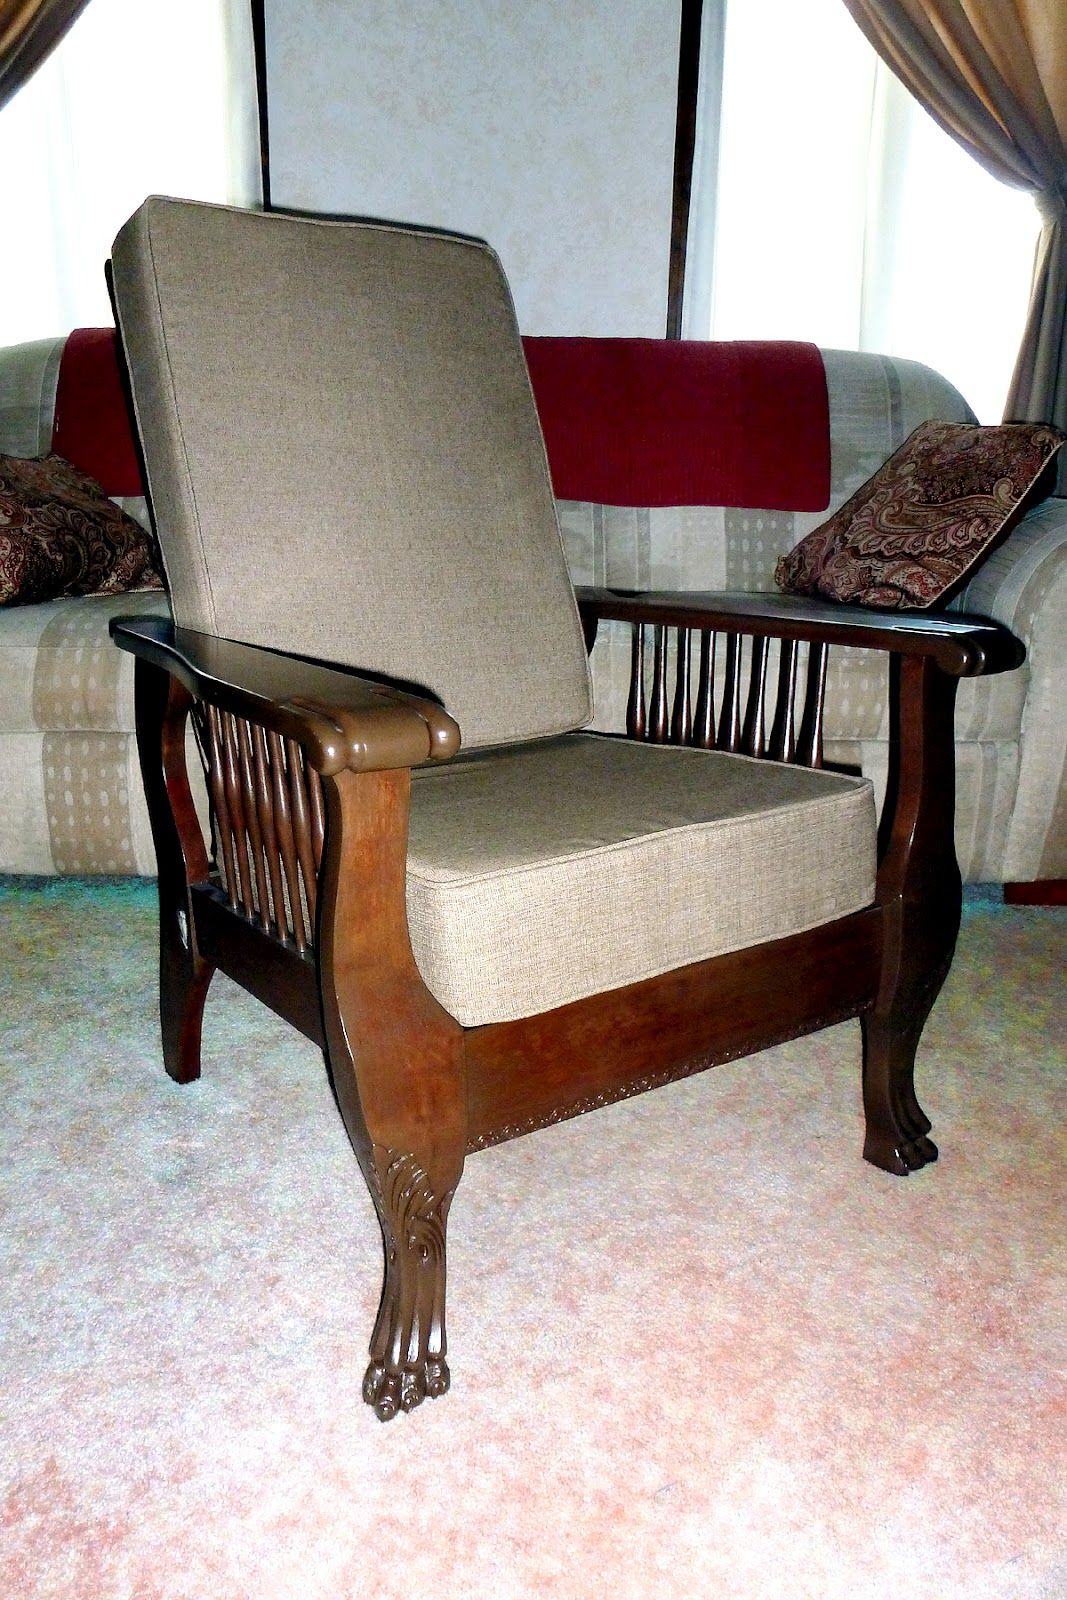 Morris Chairs My Grandma Oliver 39s 1905 Morris Chair Restoration Here Is